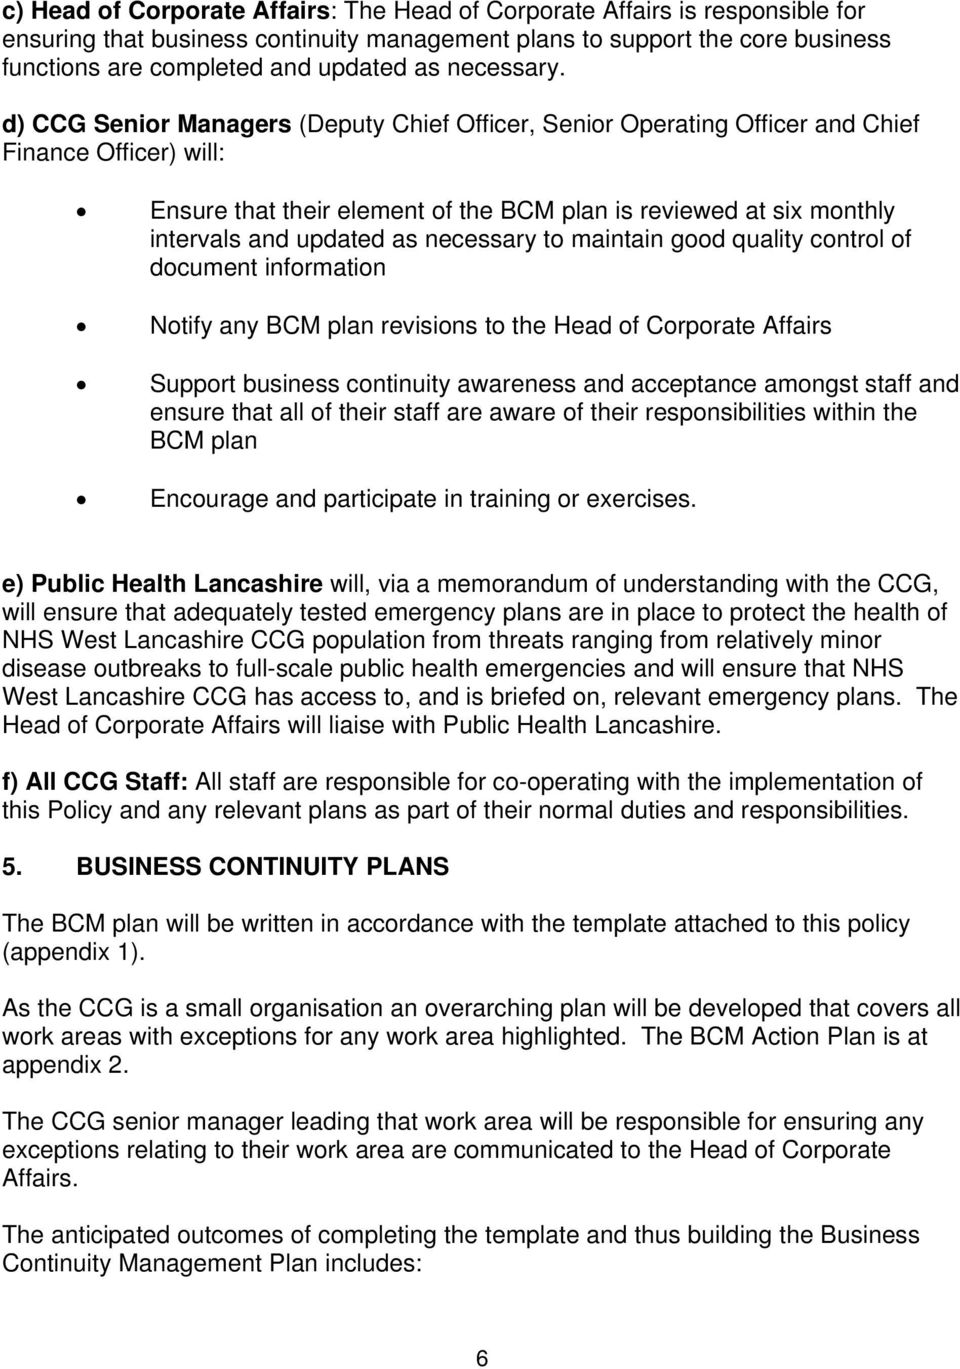 d) CCG Senior Managers (Deputy Chief Officer, Senior Operating Officer and Chief Finance Officer) will: Ensure that their element of the BCM plan is reviewed at six monthly intervals and updated as